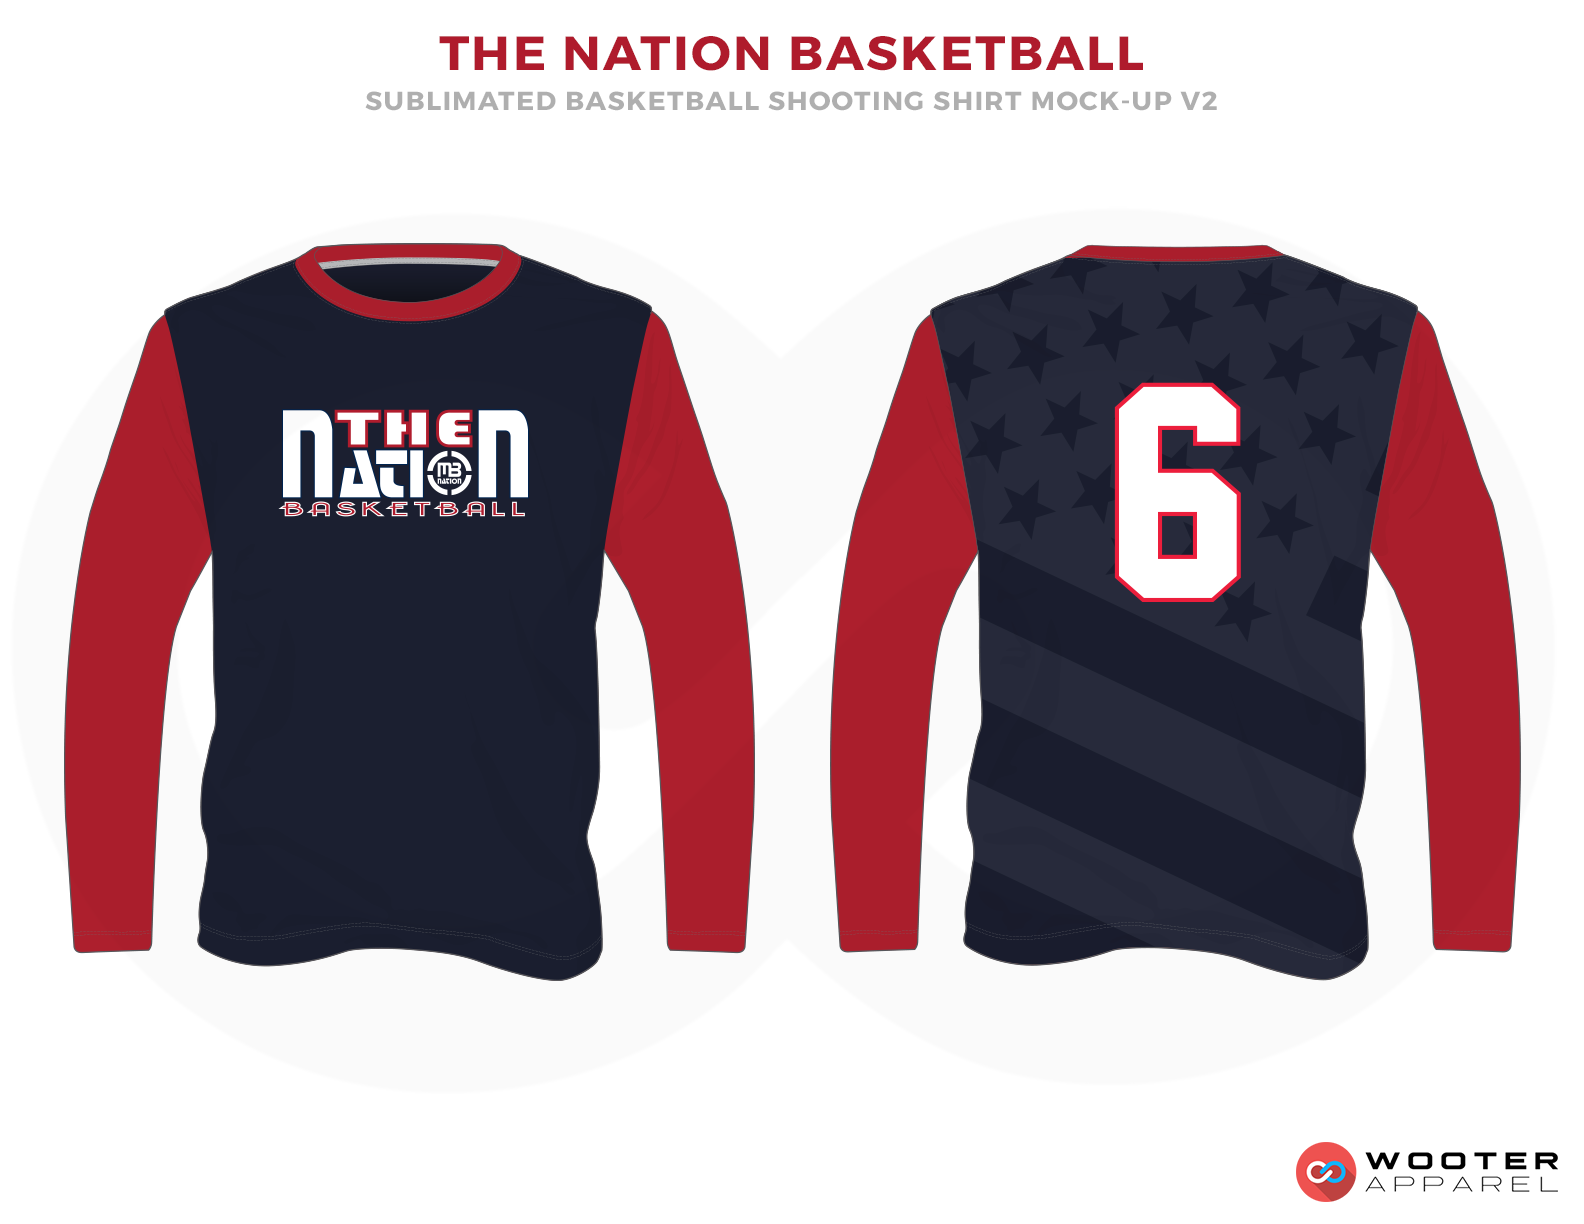 THE NATION BASKETBALL Maroon White and Black RICHMOND ELITE ABA Grey Red and White Premium Shooting Shirt